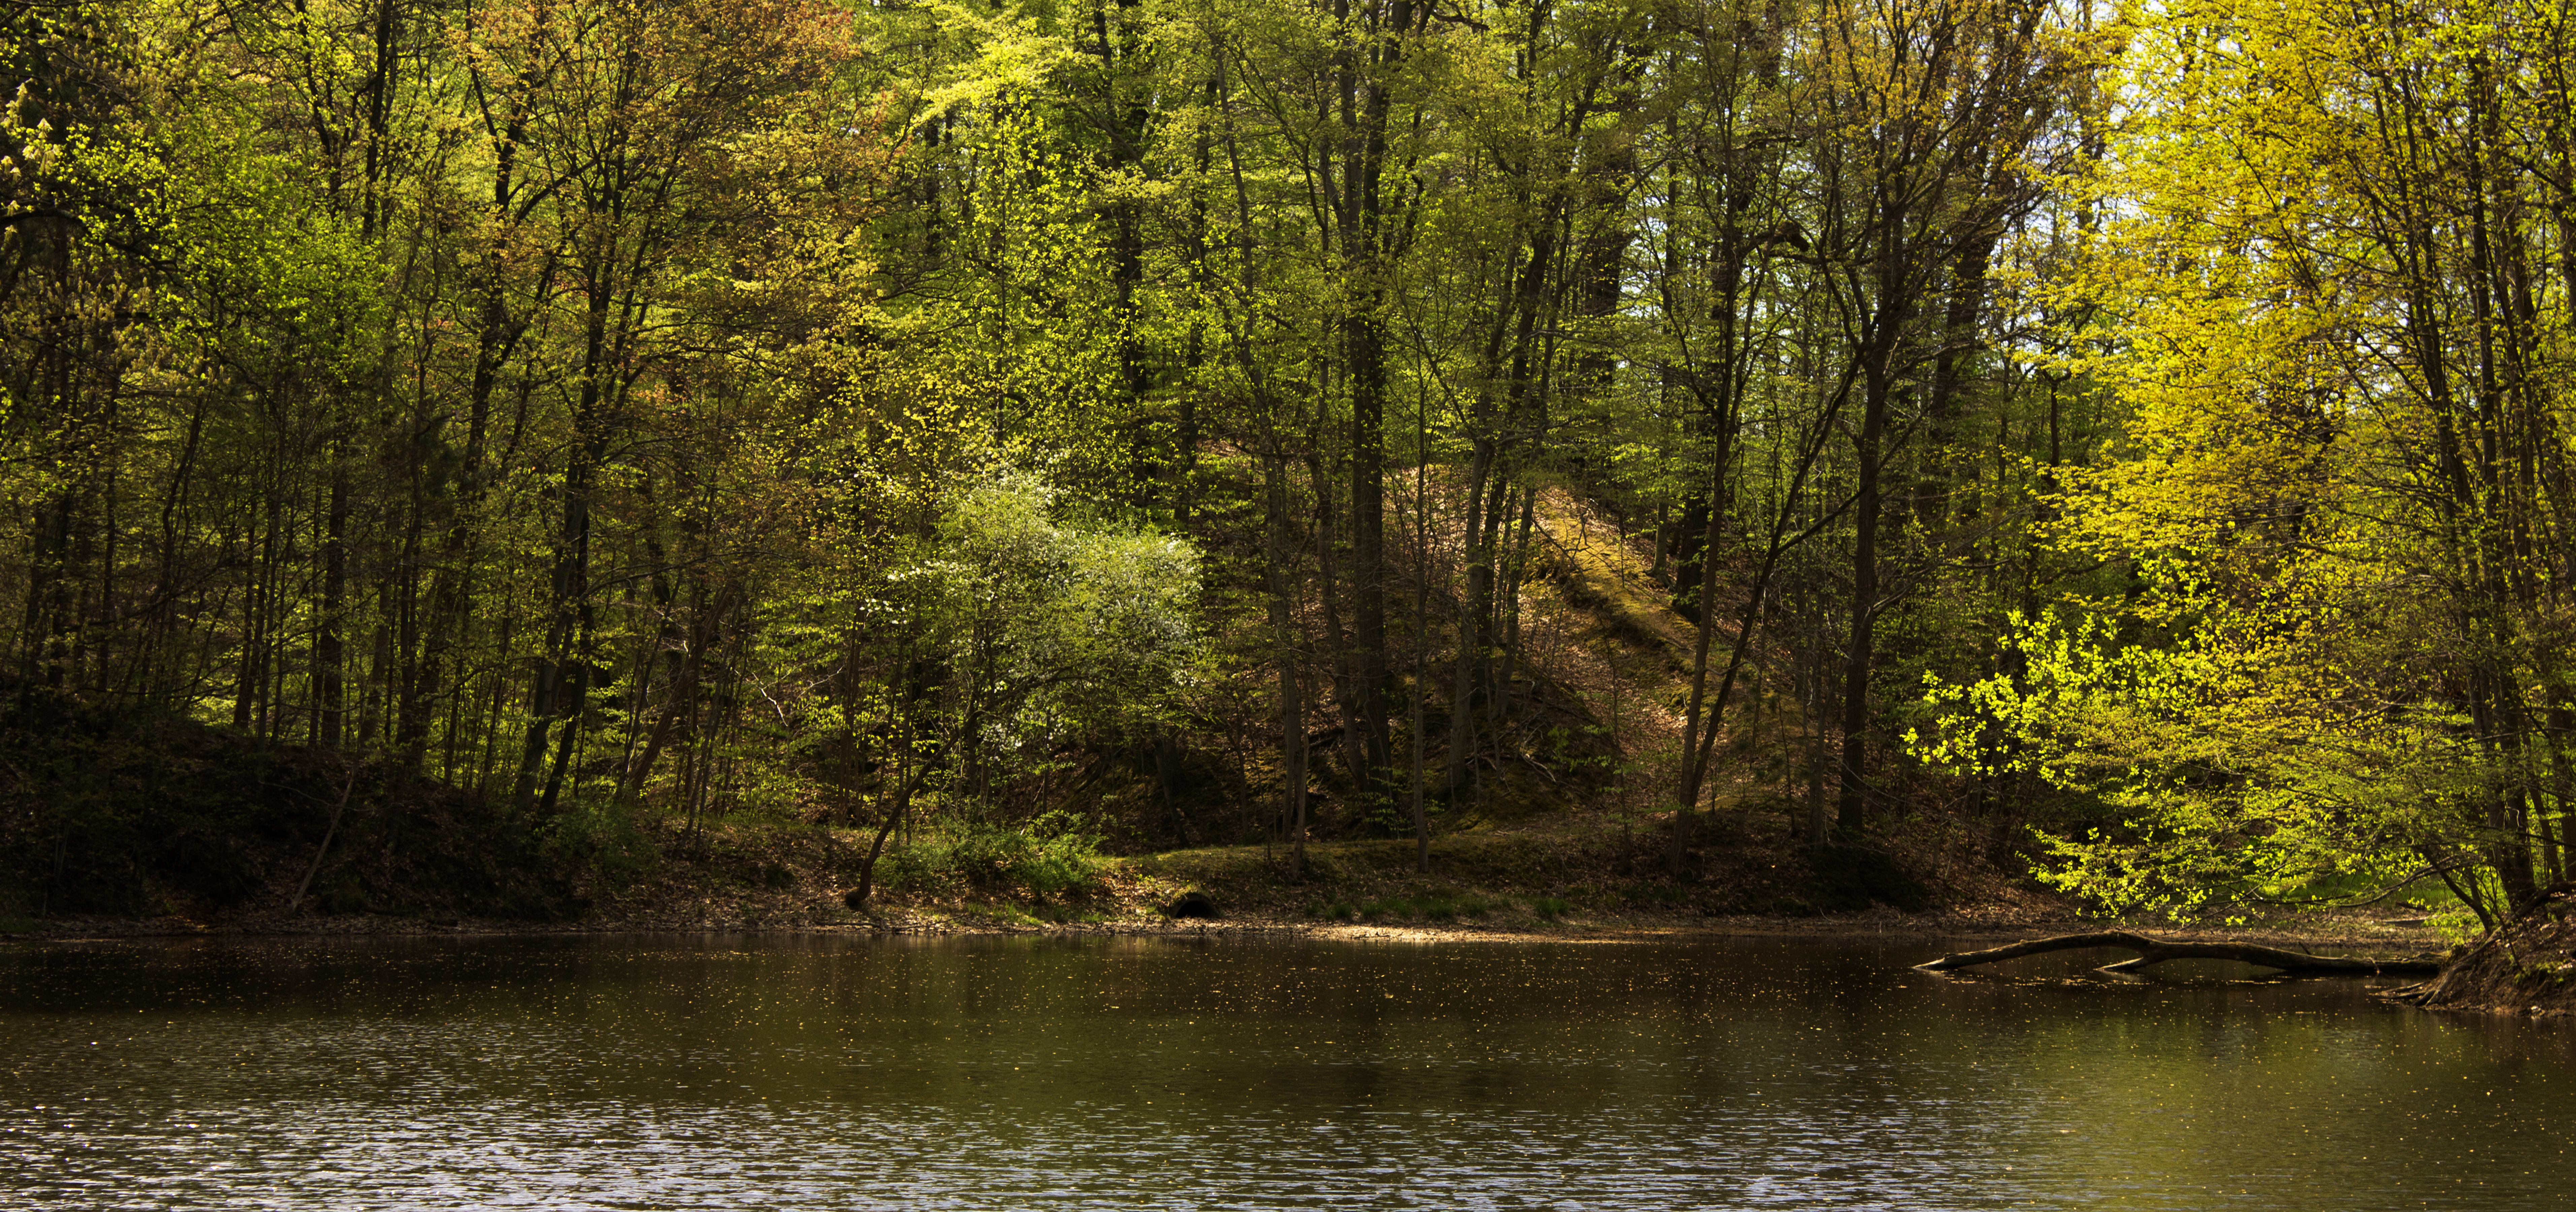 Pittenger Pond was created with an earthen dam. The pond was stocked with small mouth bass and a favorite area for the family. The dam has since been removed.